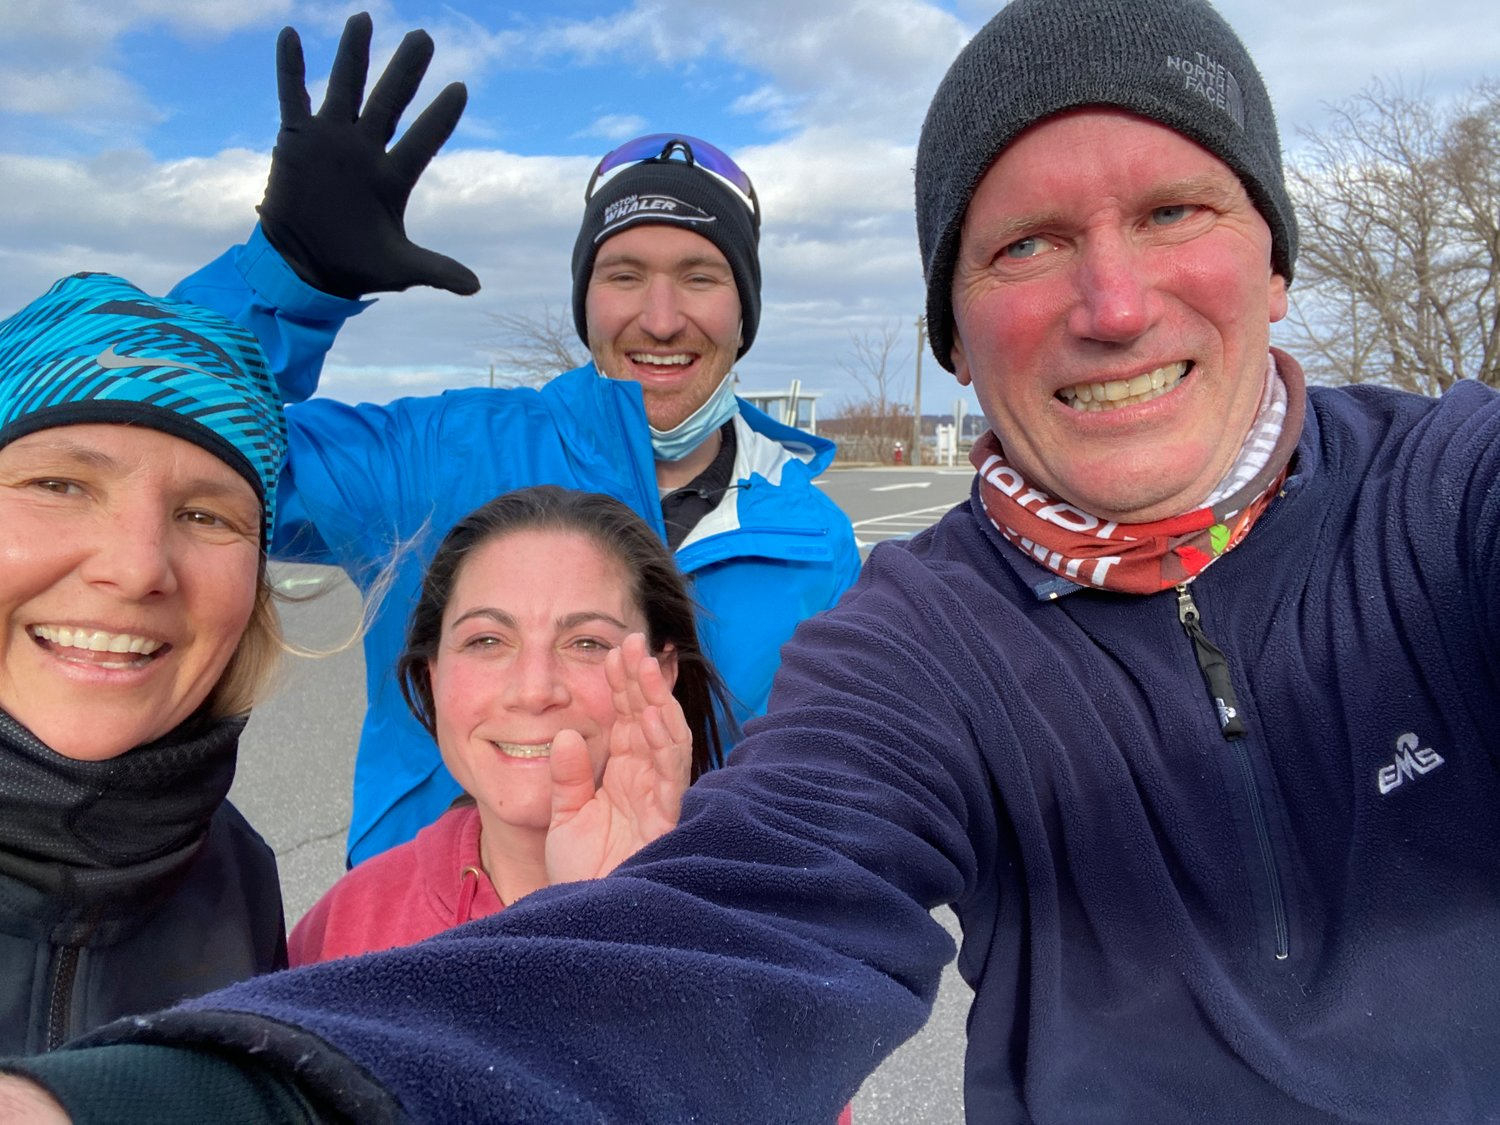 Danielle Taylor, left, Cheryl Lordi, Liam Gagliano and John Quirk took part in the 4x4x48 challenge in Oyster Bay on March 5.